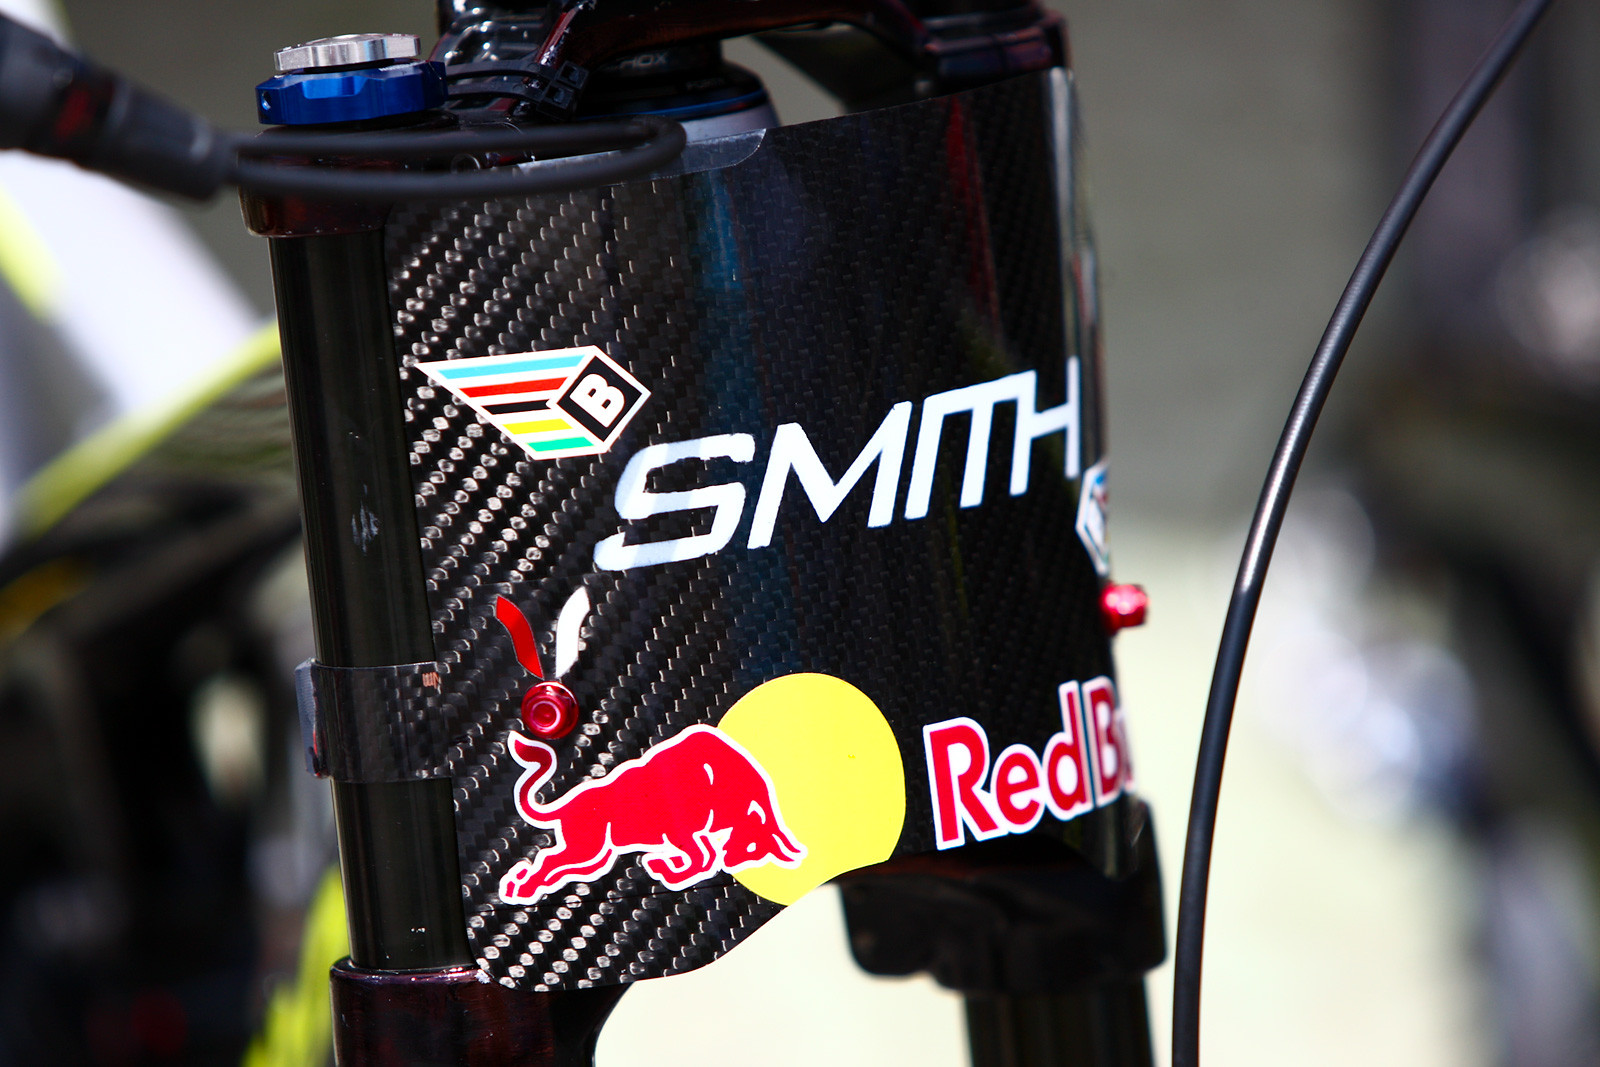 Steve Smith's Carbon Number Board at Val di Sole - 2012 UCI World Cup, Val di Sole Day 1 - Mountain Biking Pictures - Vital MTB